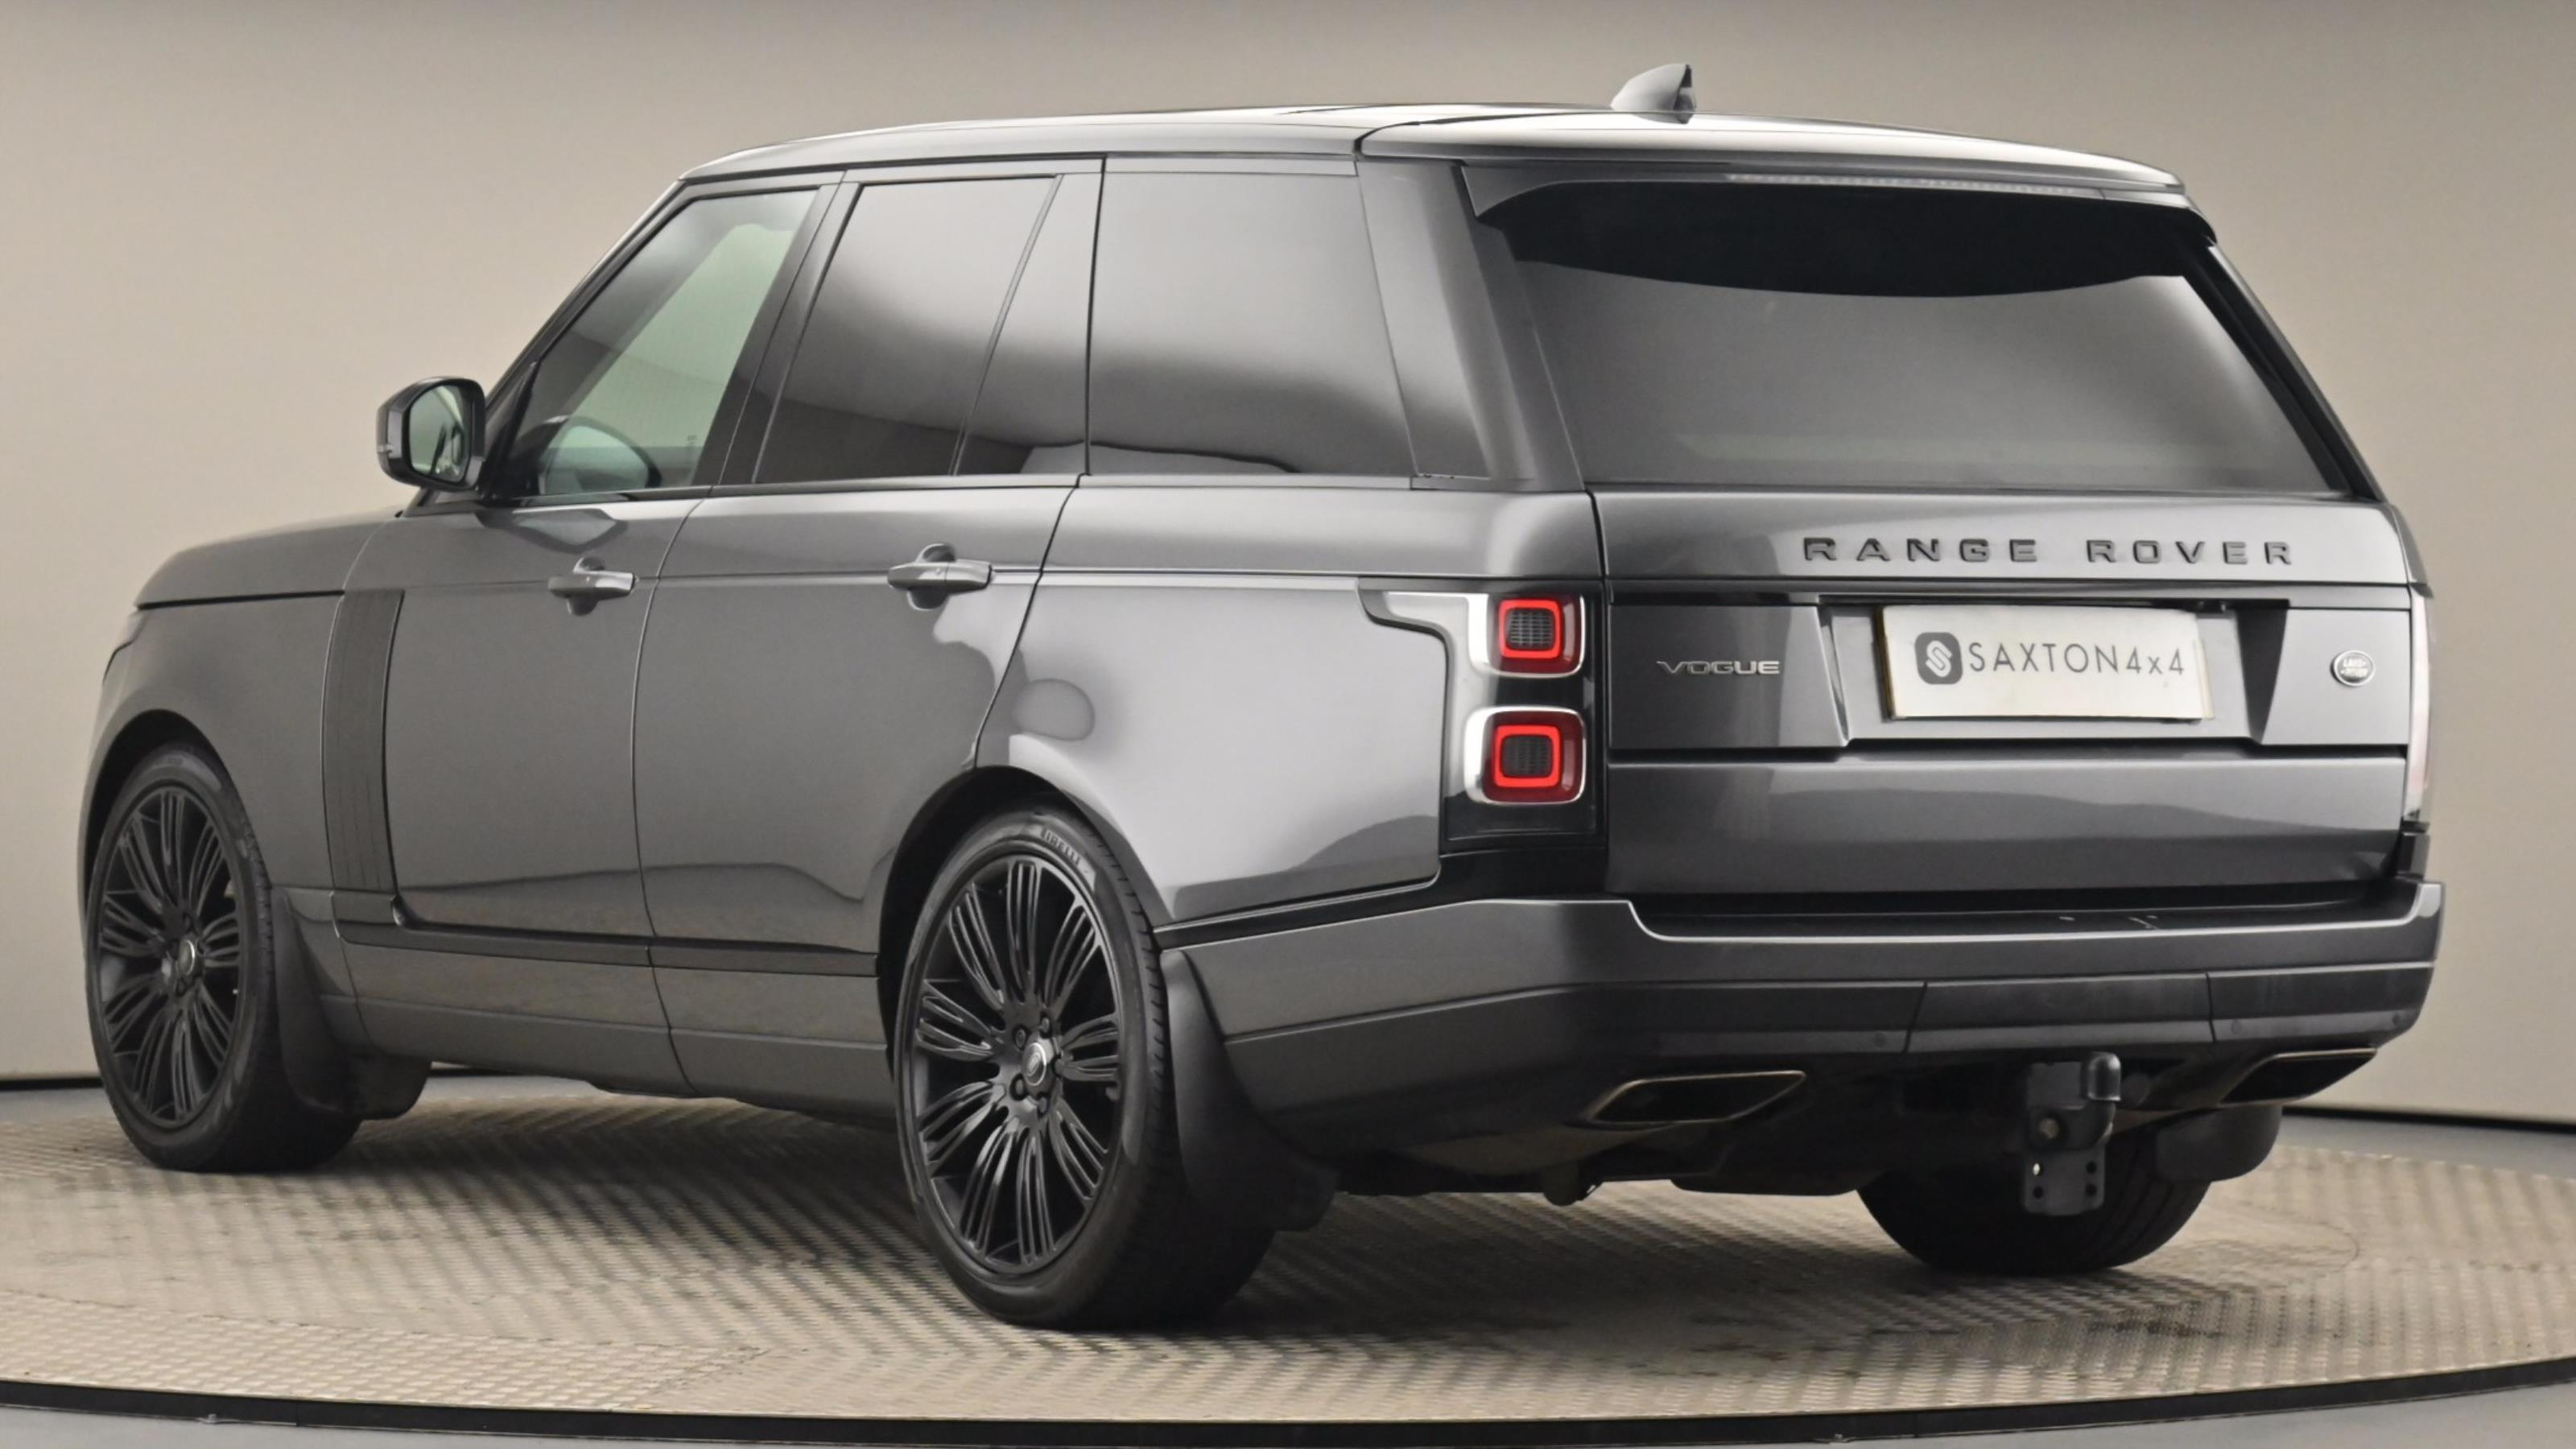 Used 2019 Land Rover RANGE ROVER 3.0 SDV6 Vogue 4dr Auto GREY at Saxton4x4